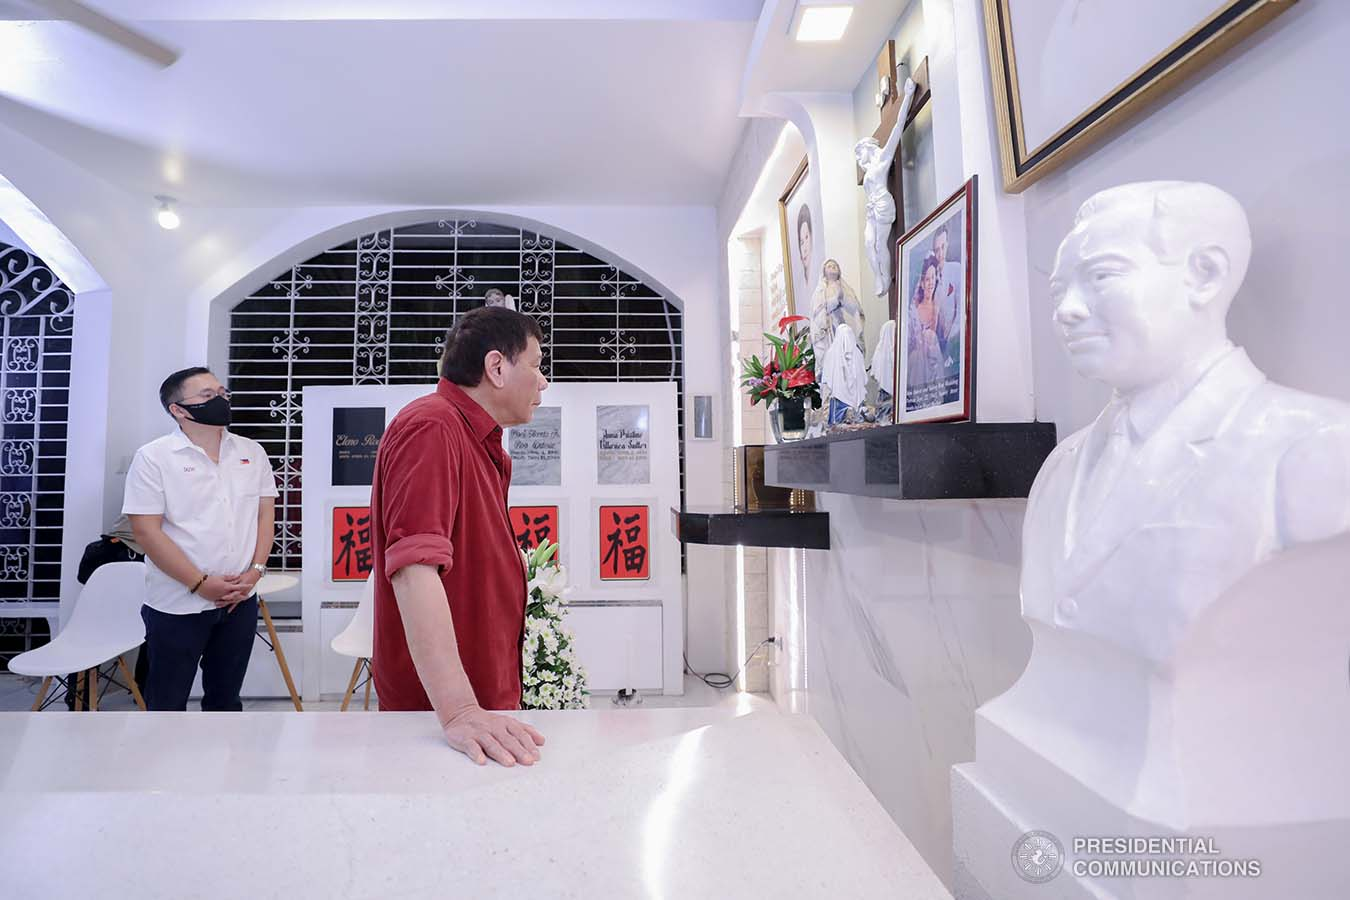 President Rodrigo Roa Duterte is accompanied by Senator Christopher Lawrence Go as he visits the resting place of his parents, Vicente Duterte, the former governor of then undivided Davao Province, and Soledad Duterte, one of Davao's respected civic leaders, at the Roman Catholic Cemetery in Davao City, before heading to Manila, on February 21, 2021. The President consistently visits his departed loved ones even when he was still mayor of Davao City. RICHARD MADELO/ PRESIDENTIAL PHOTO